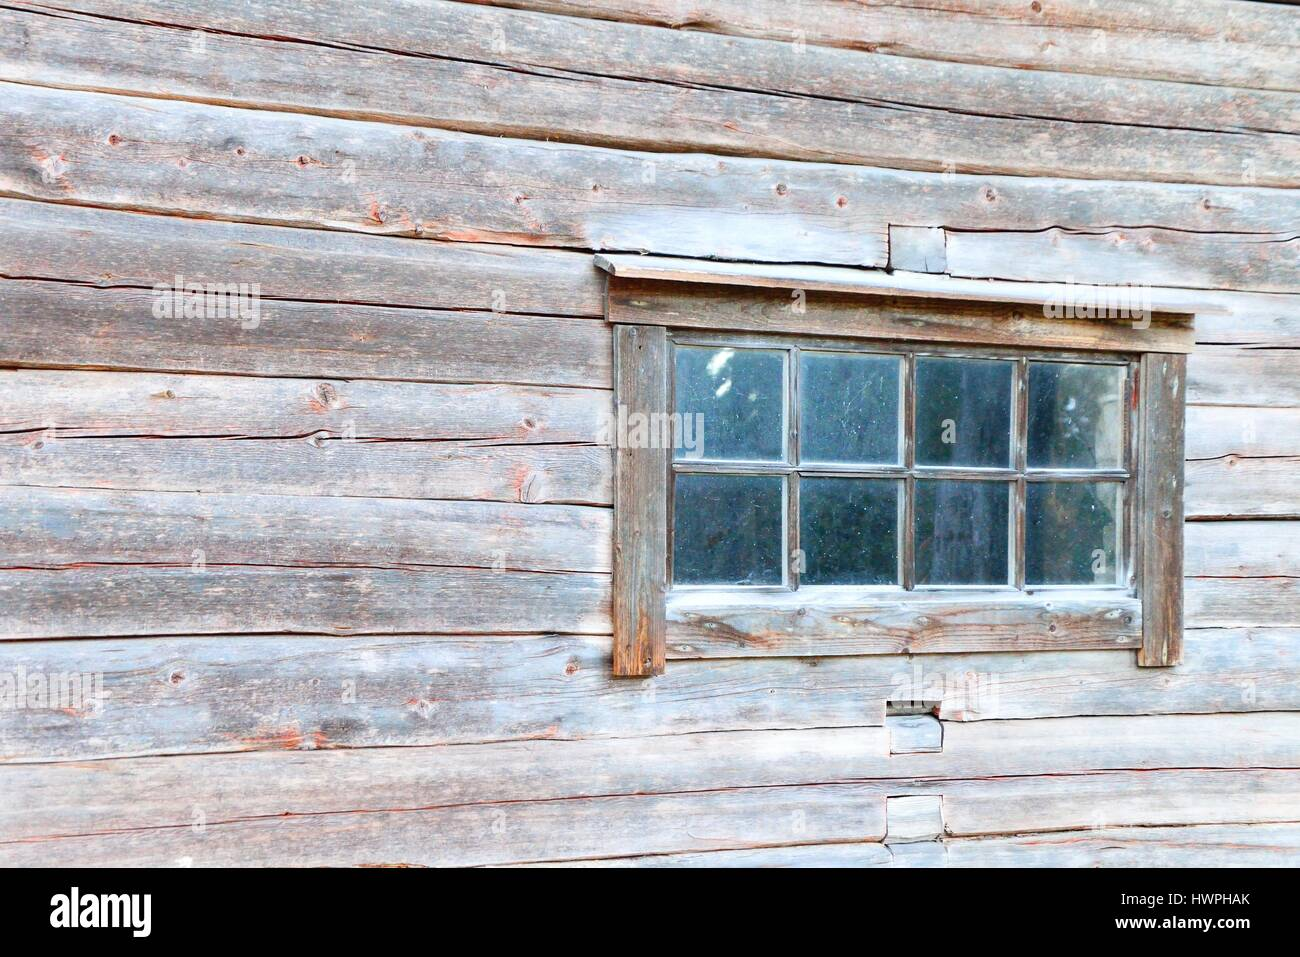 alte haus protokollfenster mit rustikalen rahmen finnland stockfoto bild 136335547 alamy. Black Bedroom Furniture Sets. Home Design Ideas